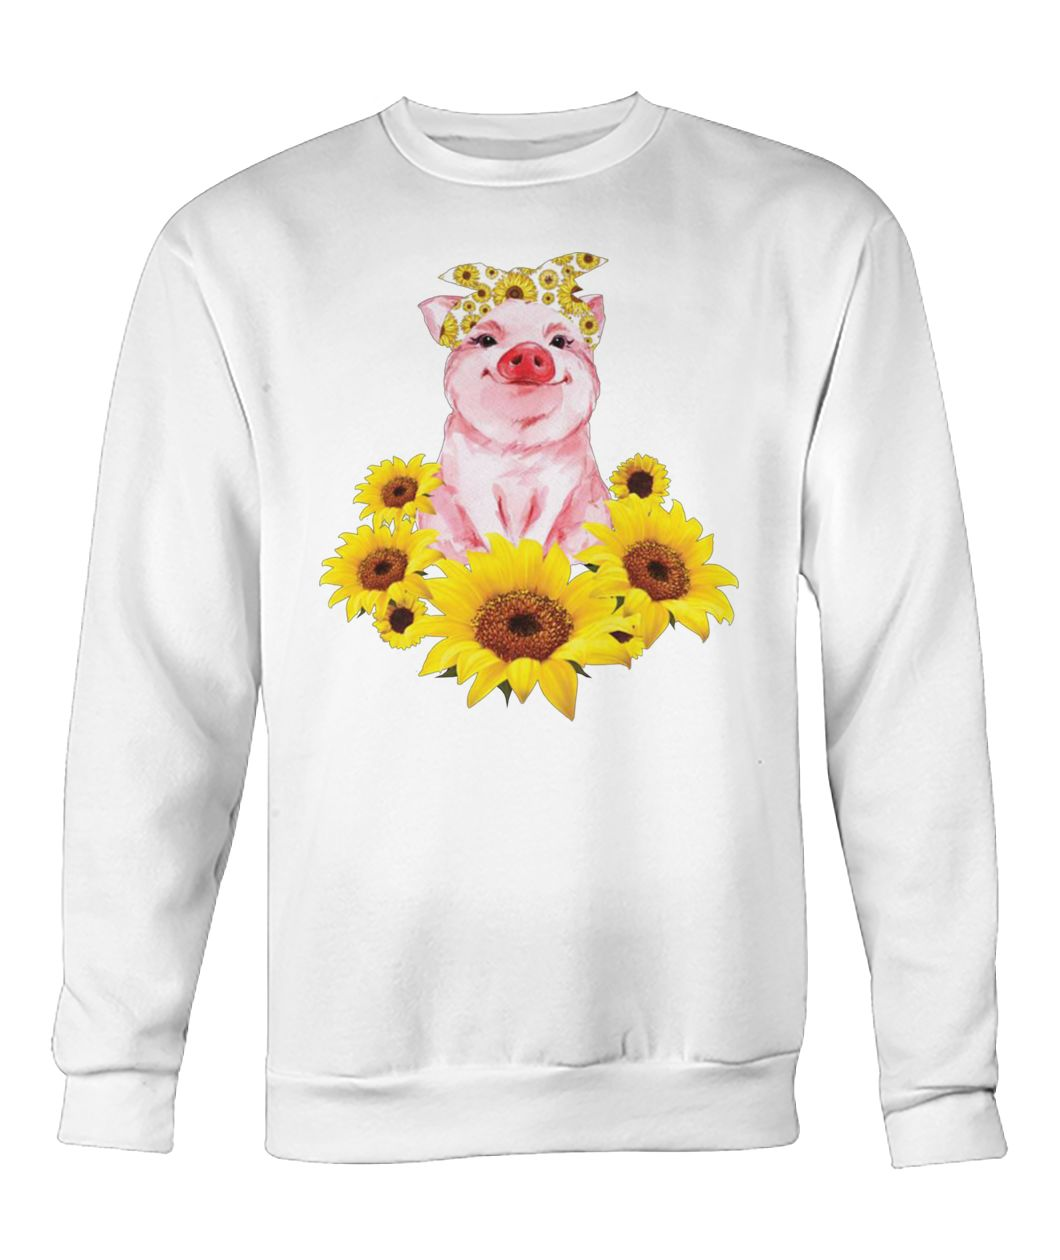 Cute pig with sunflowers crew neck sweatshirt